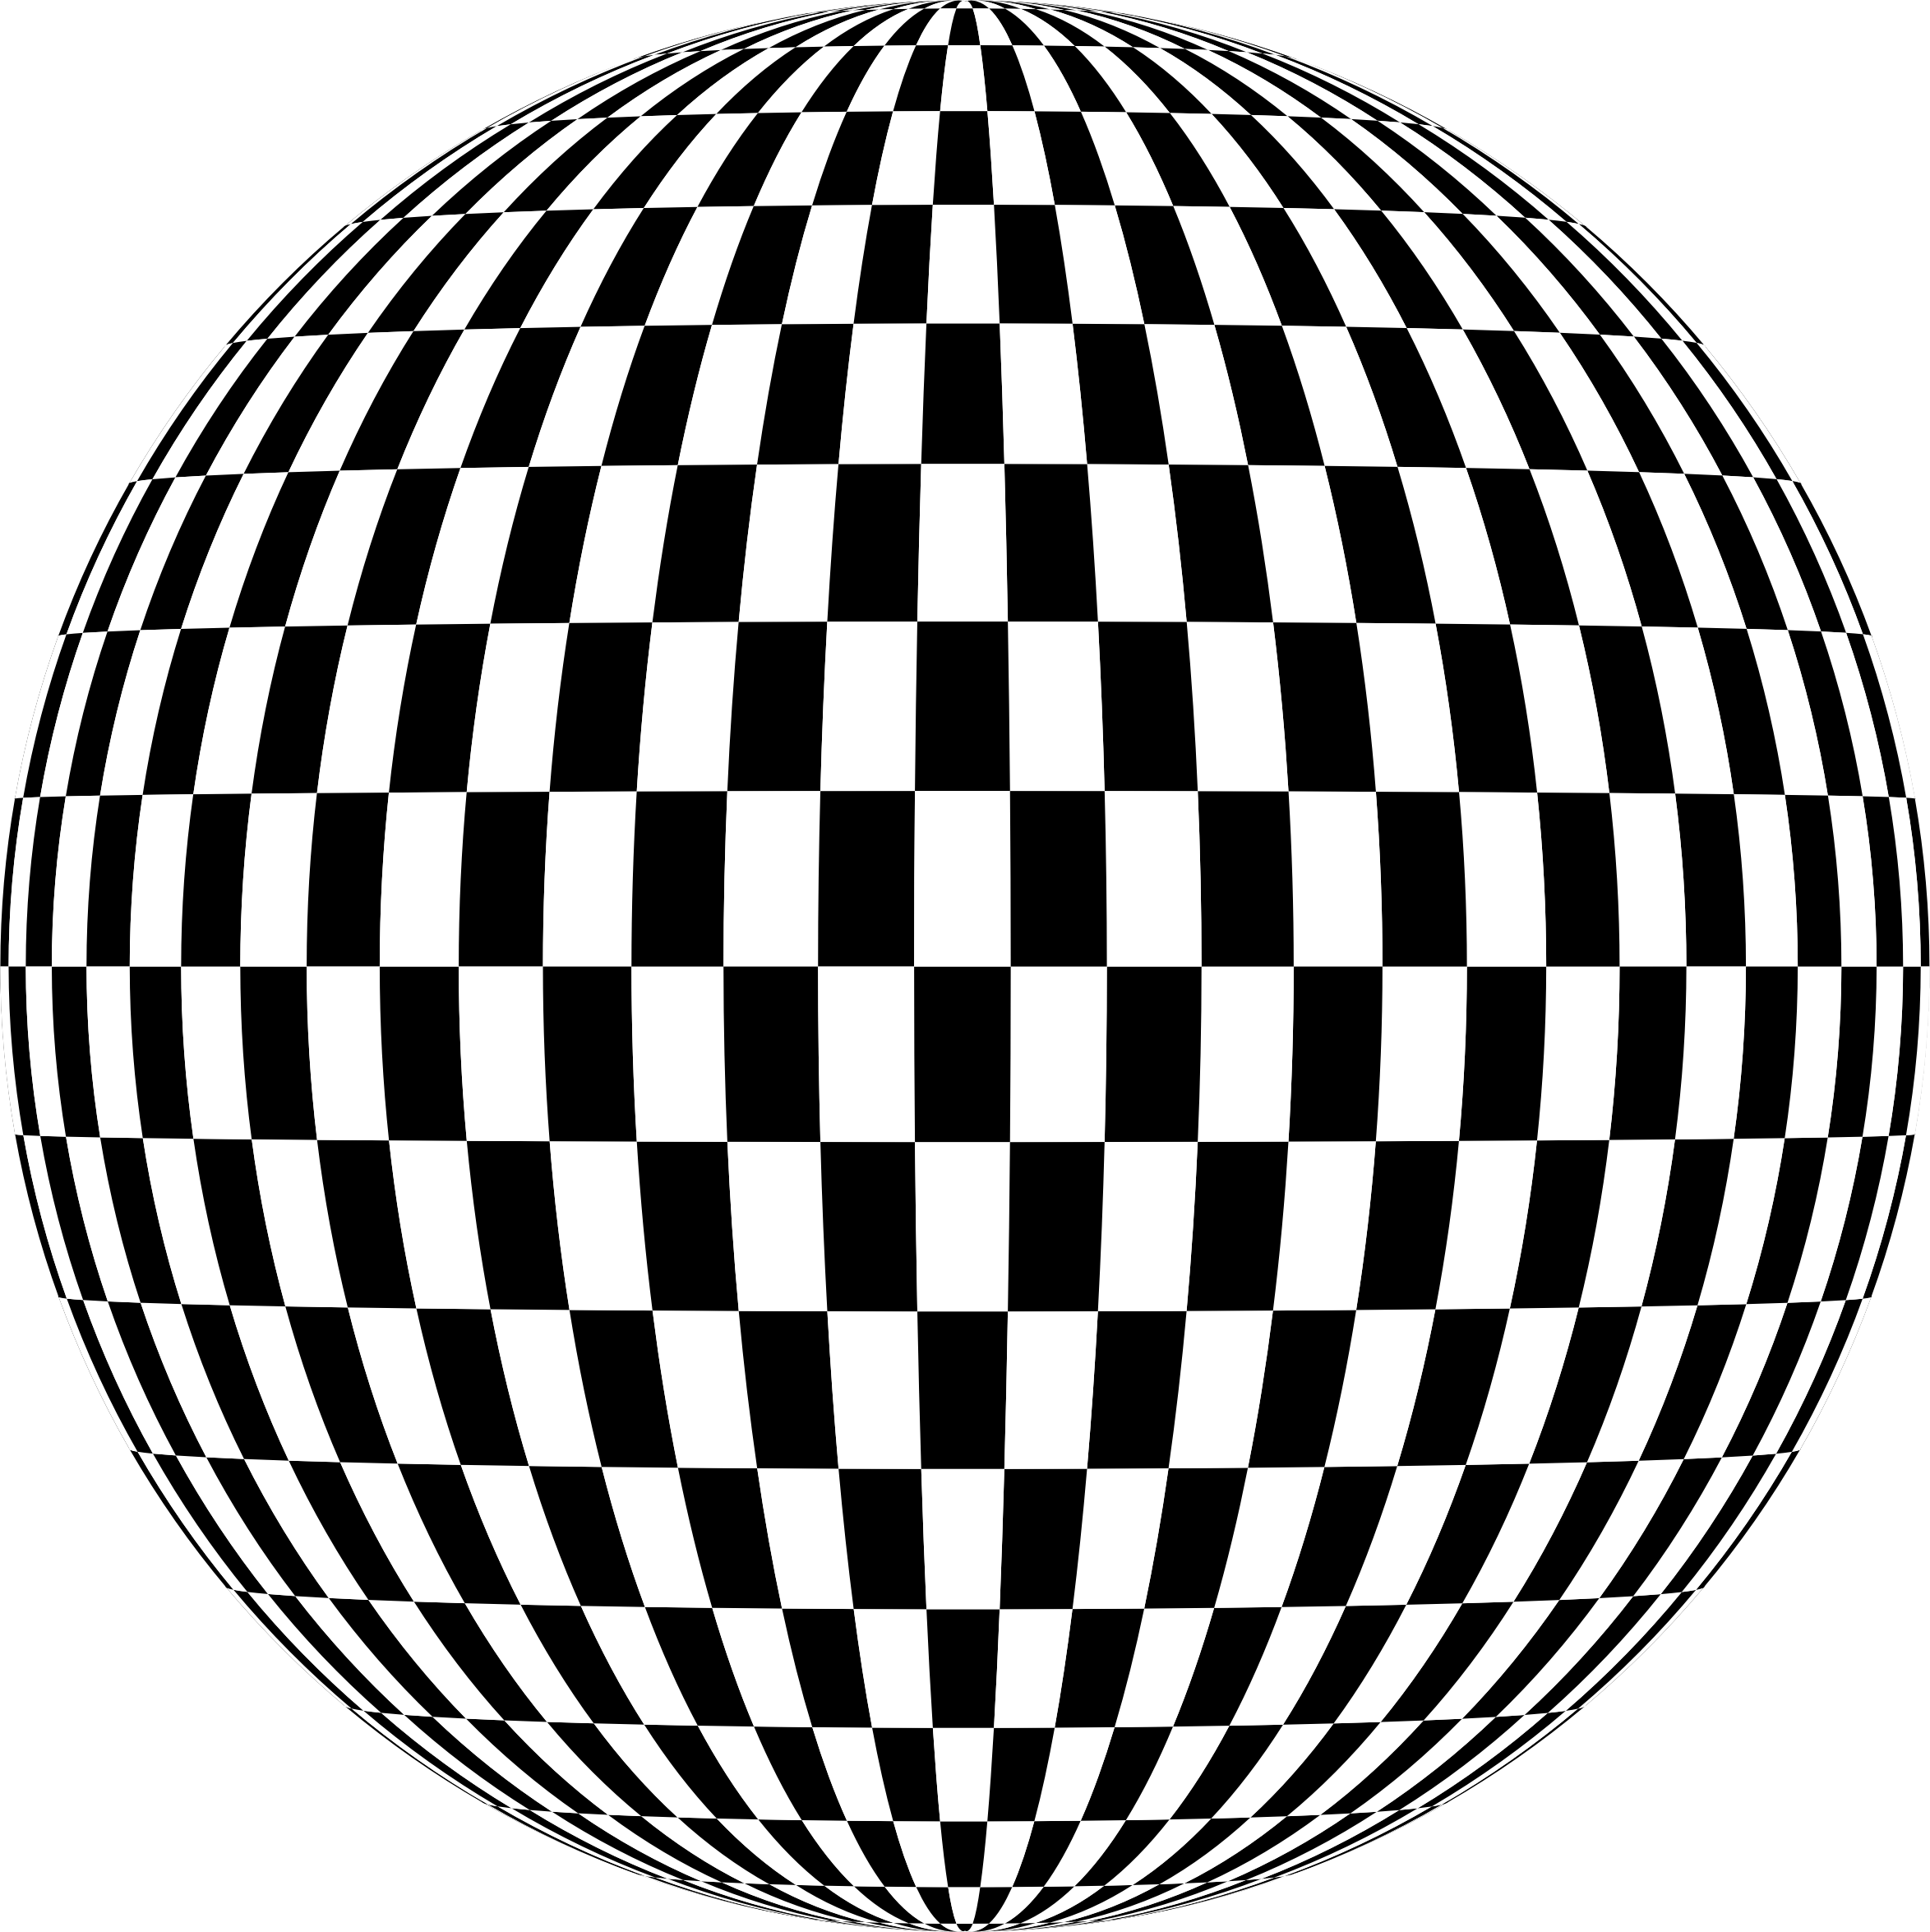 Floor vector checkerboard. Checkered sphere icons png